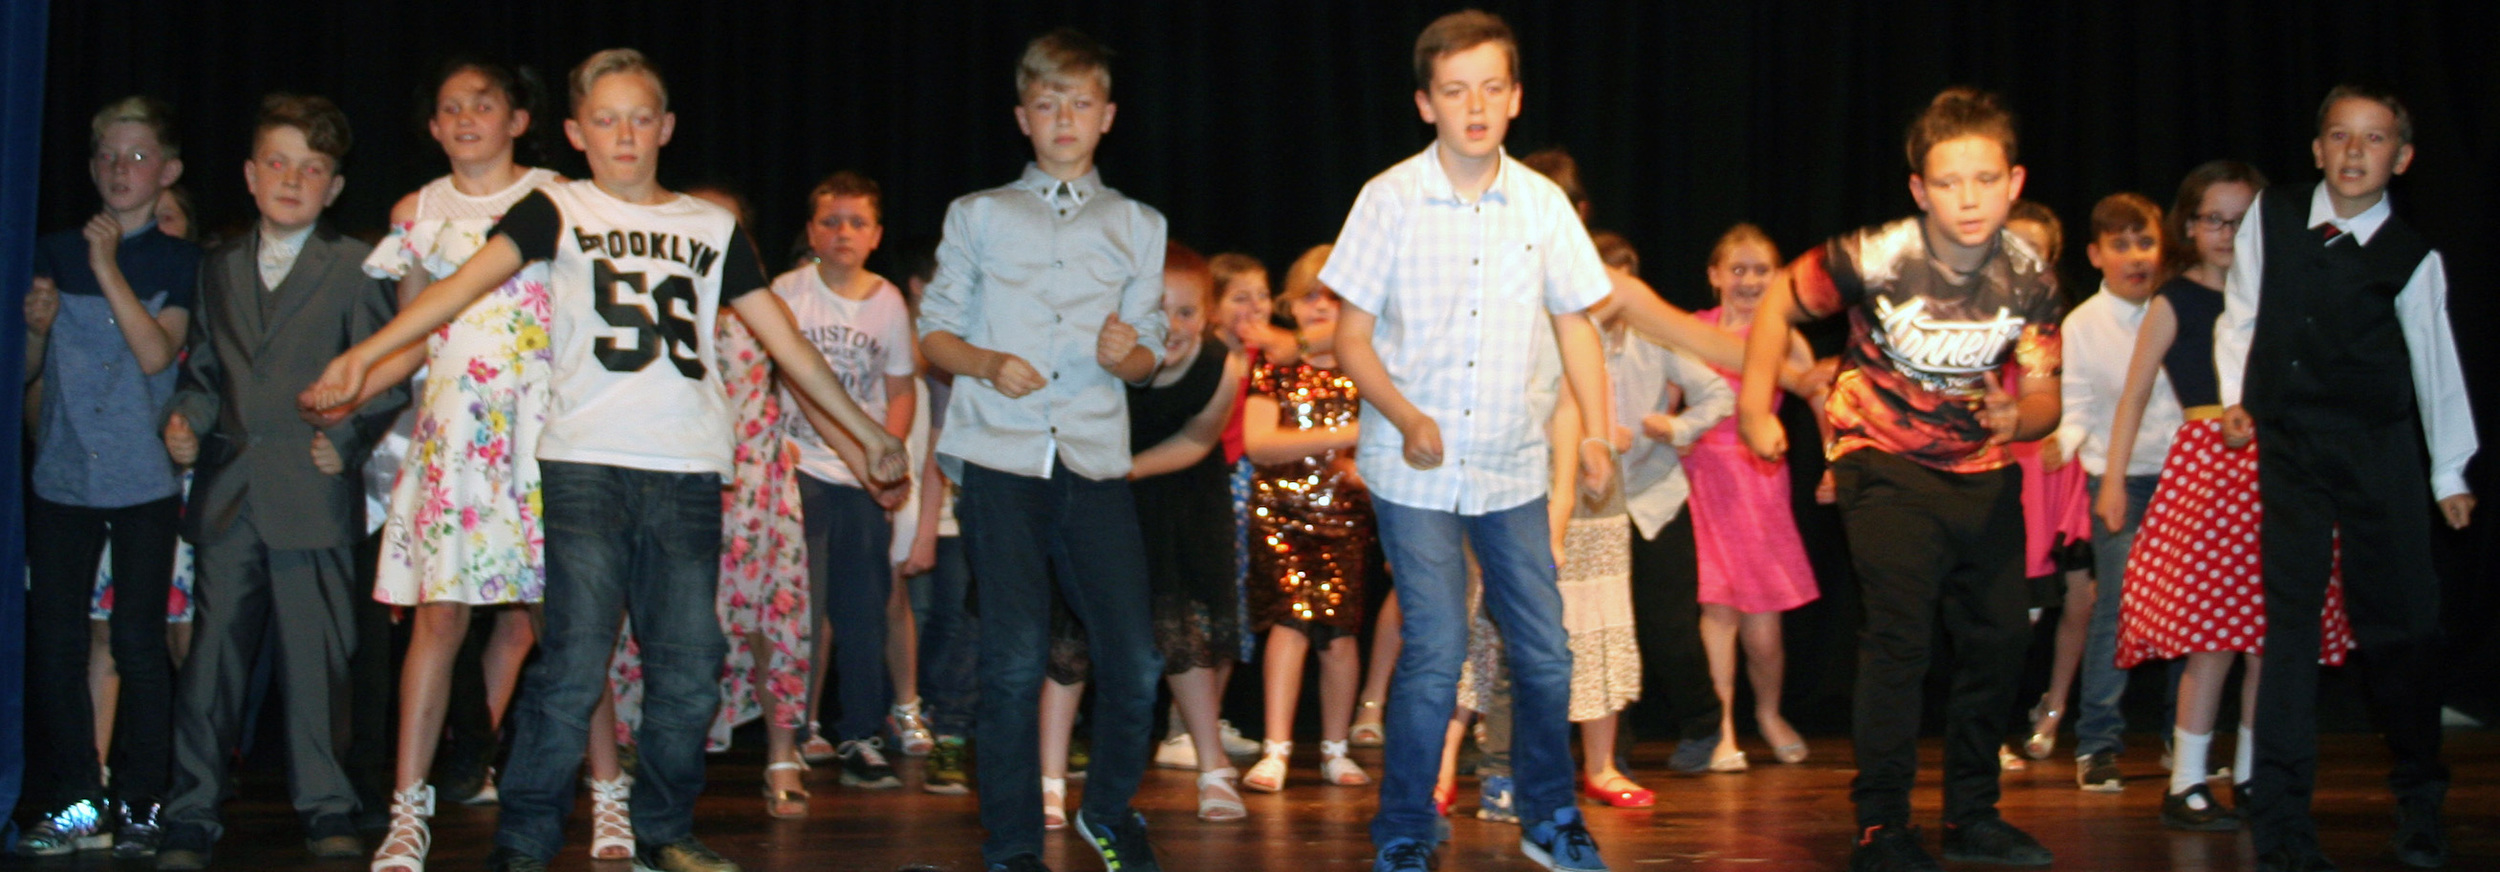 Primary Dance Competition 2016 041.JPG